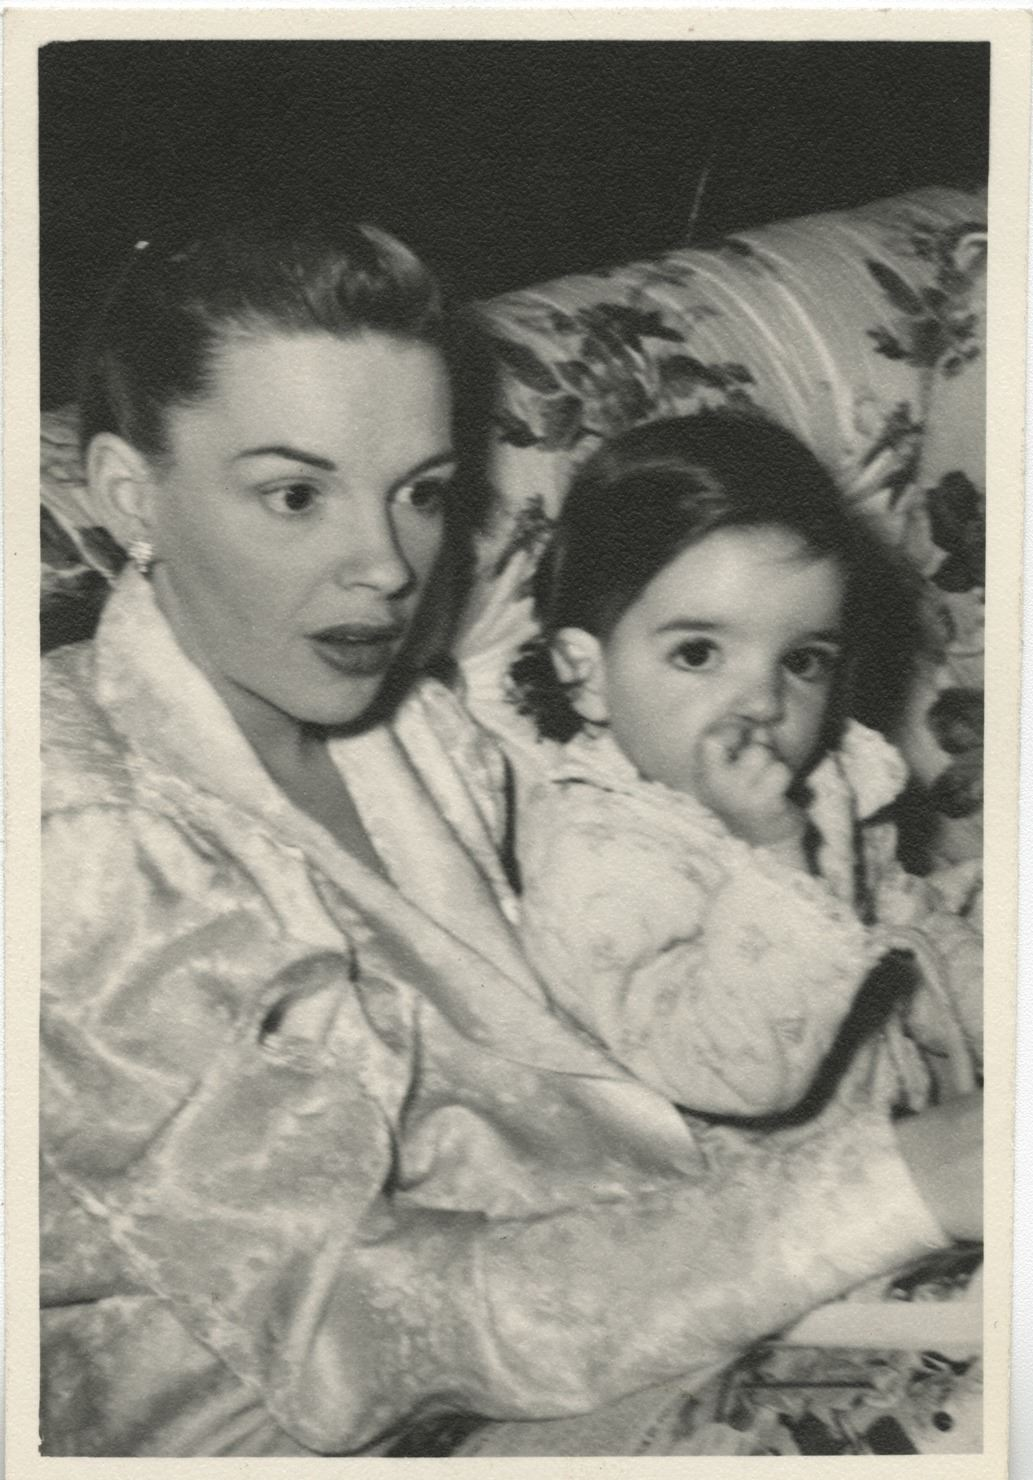 Vincente Minnelli, Judy Garland, and Liza Minnelli (12) family photographs